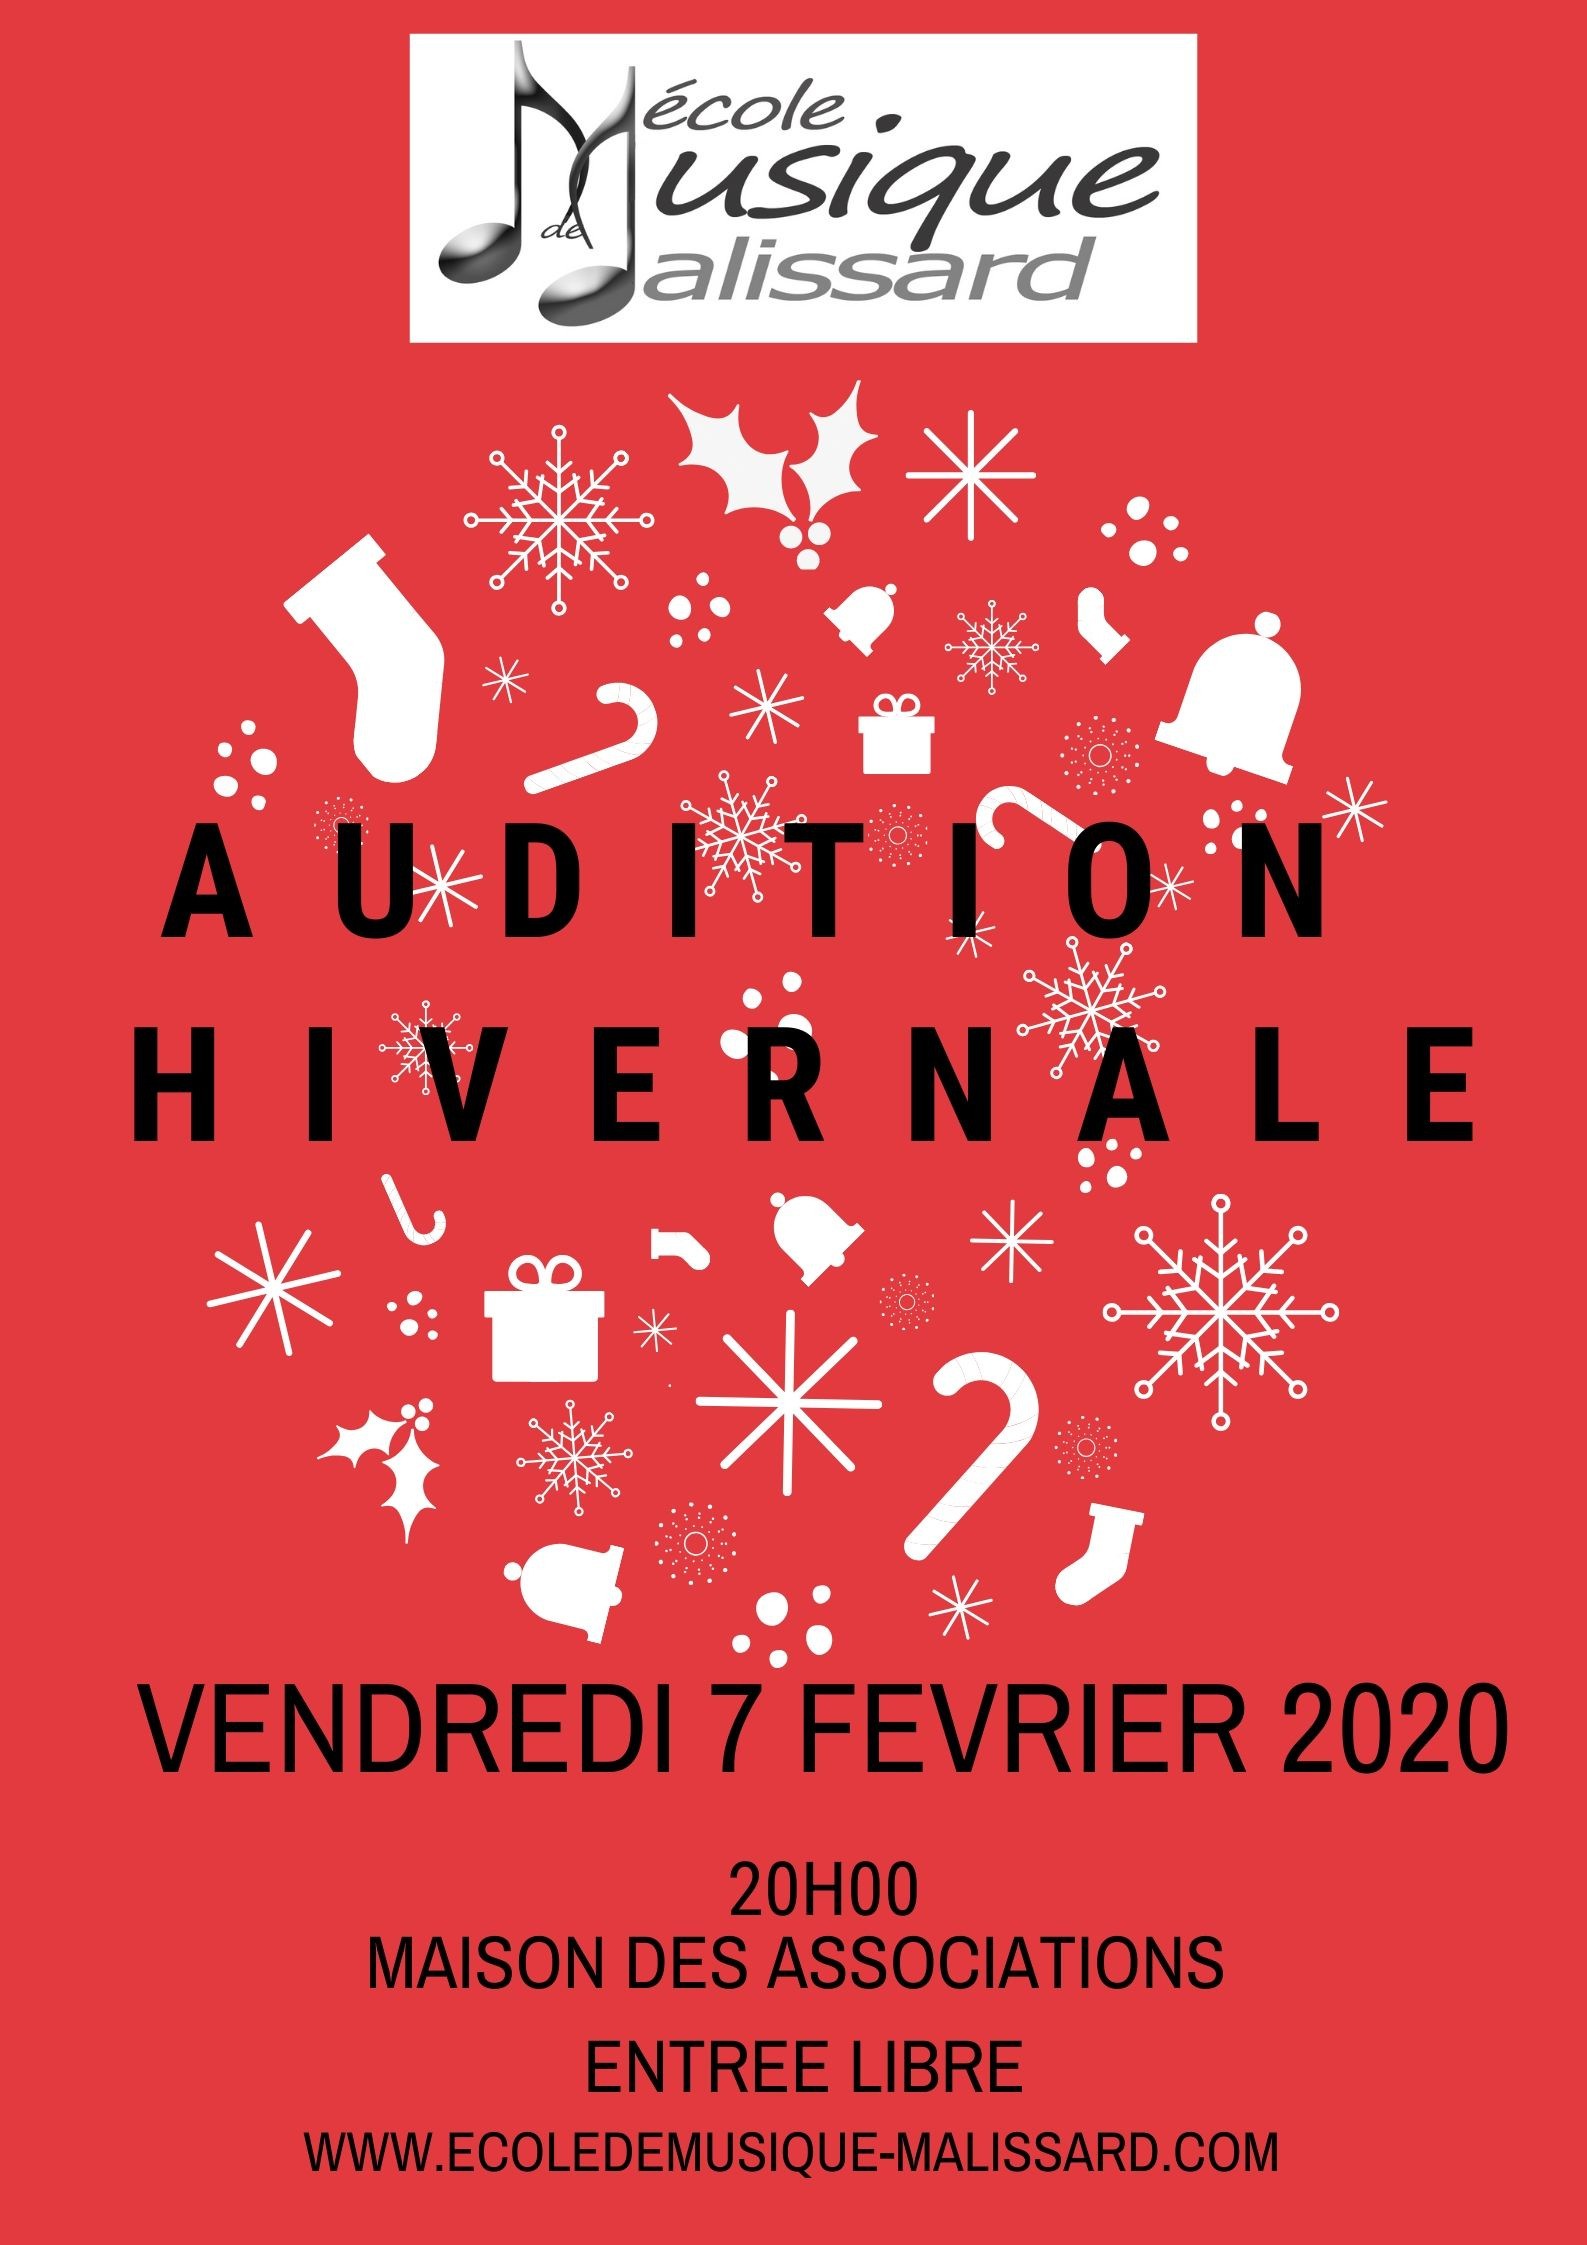 Audition hivernale2020